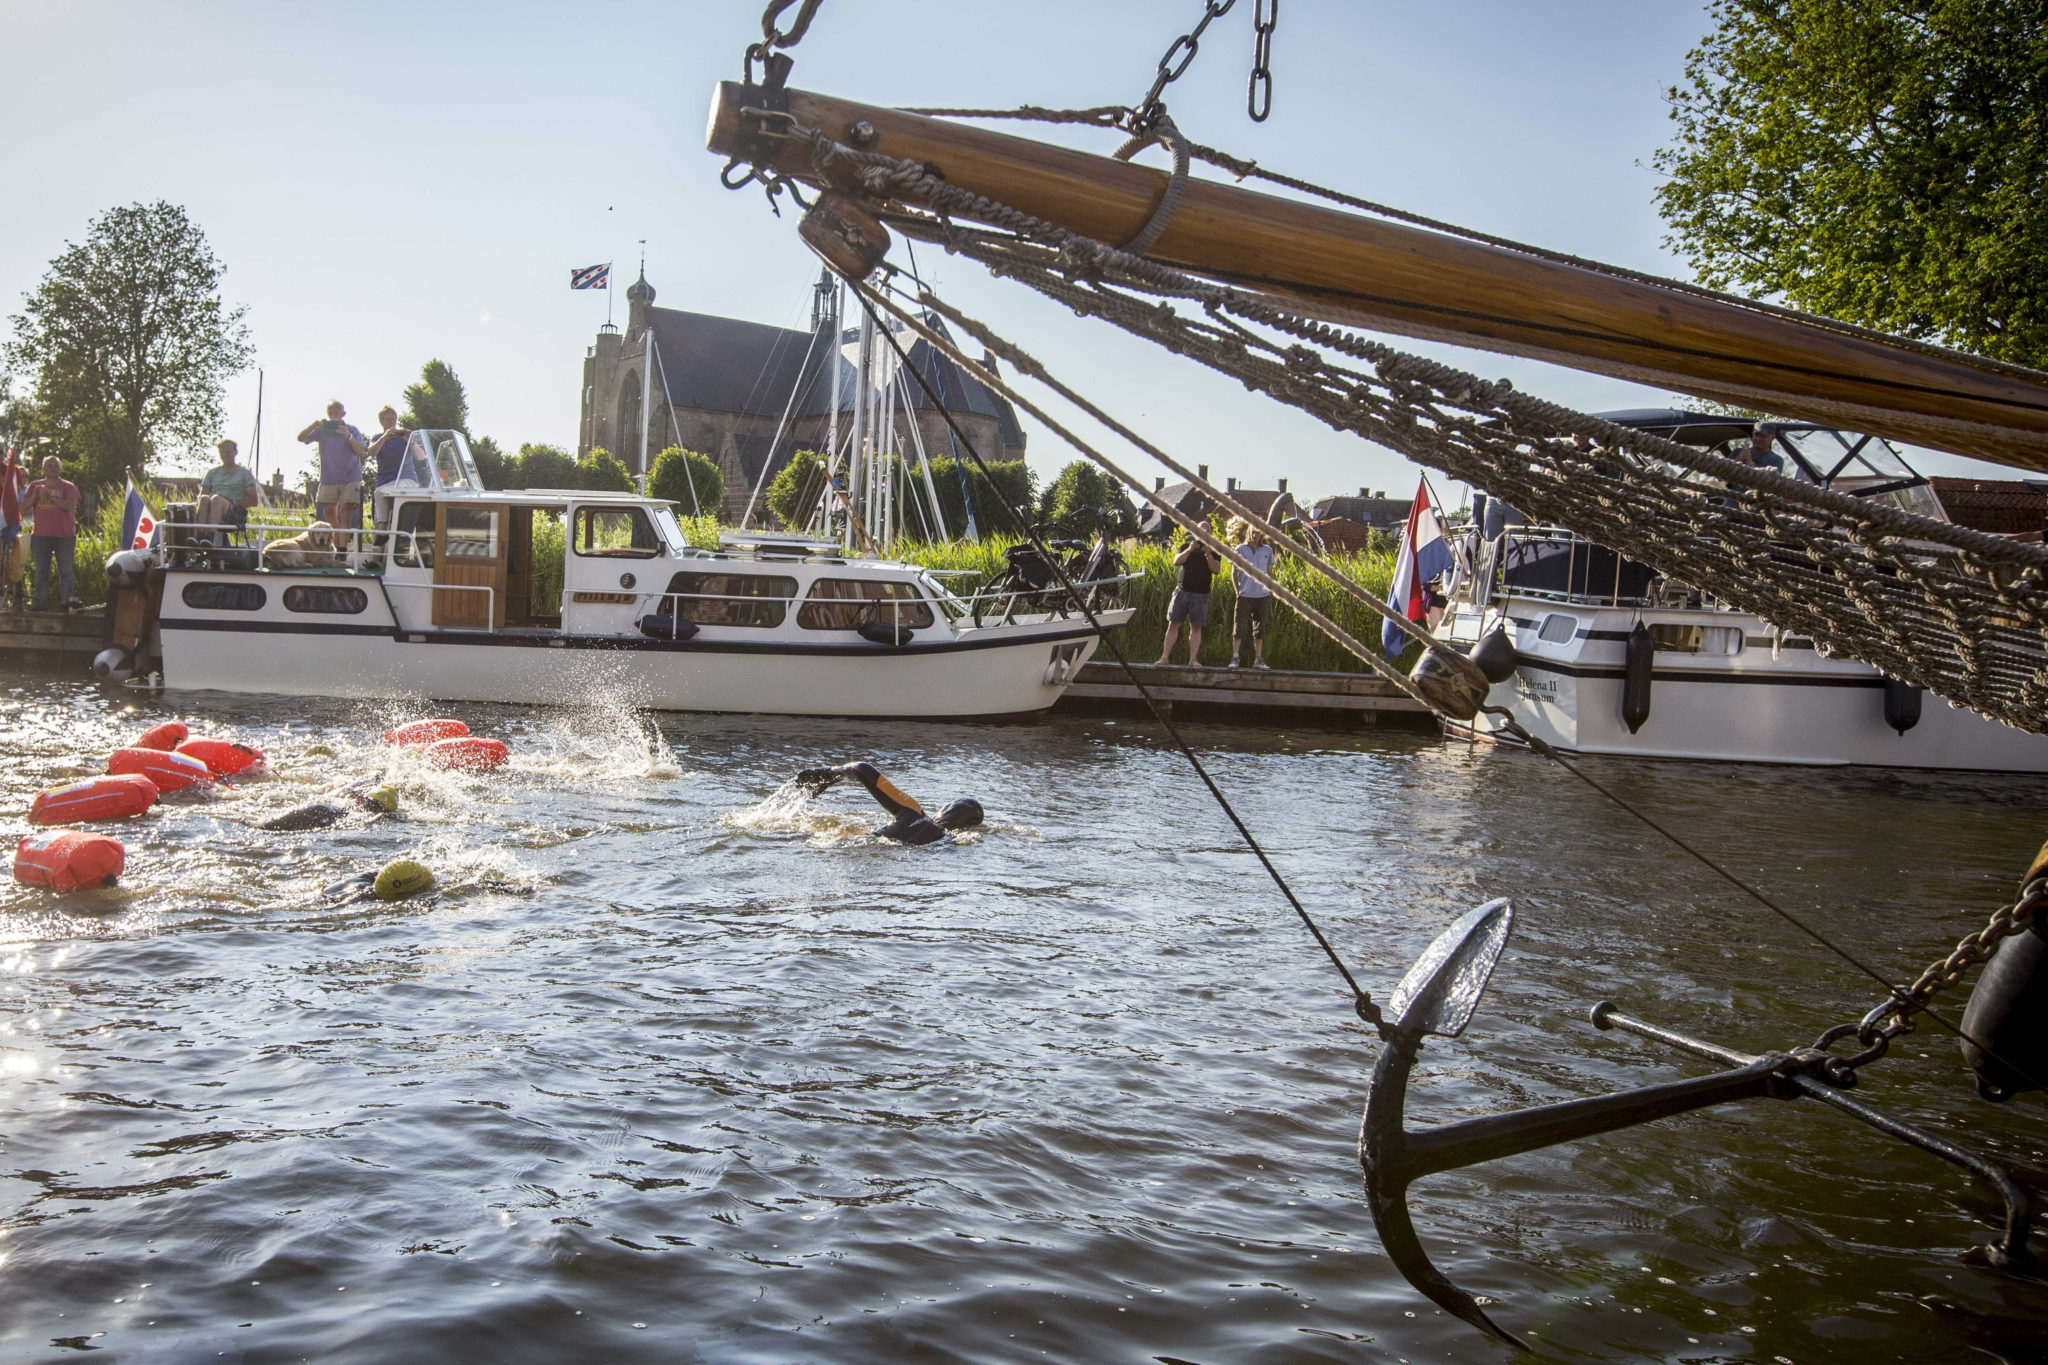 epa07667045 Dutch Former World Champion Maarten van der Weijden is passing Workum during his second attempt to swim along the Elfstedentocht, a journey of over 200 kilometers in Leeuwarden, The Netherlands, 22 June 2019. In August 2018 the swimmer raised more than five million euros for cancer research, even though he did not finish the journey.  EPA/VINCENT JANNINK  Dostawca: PAP/EPA.